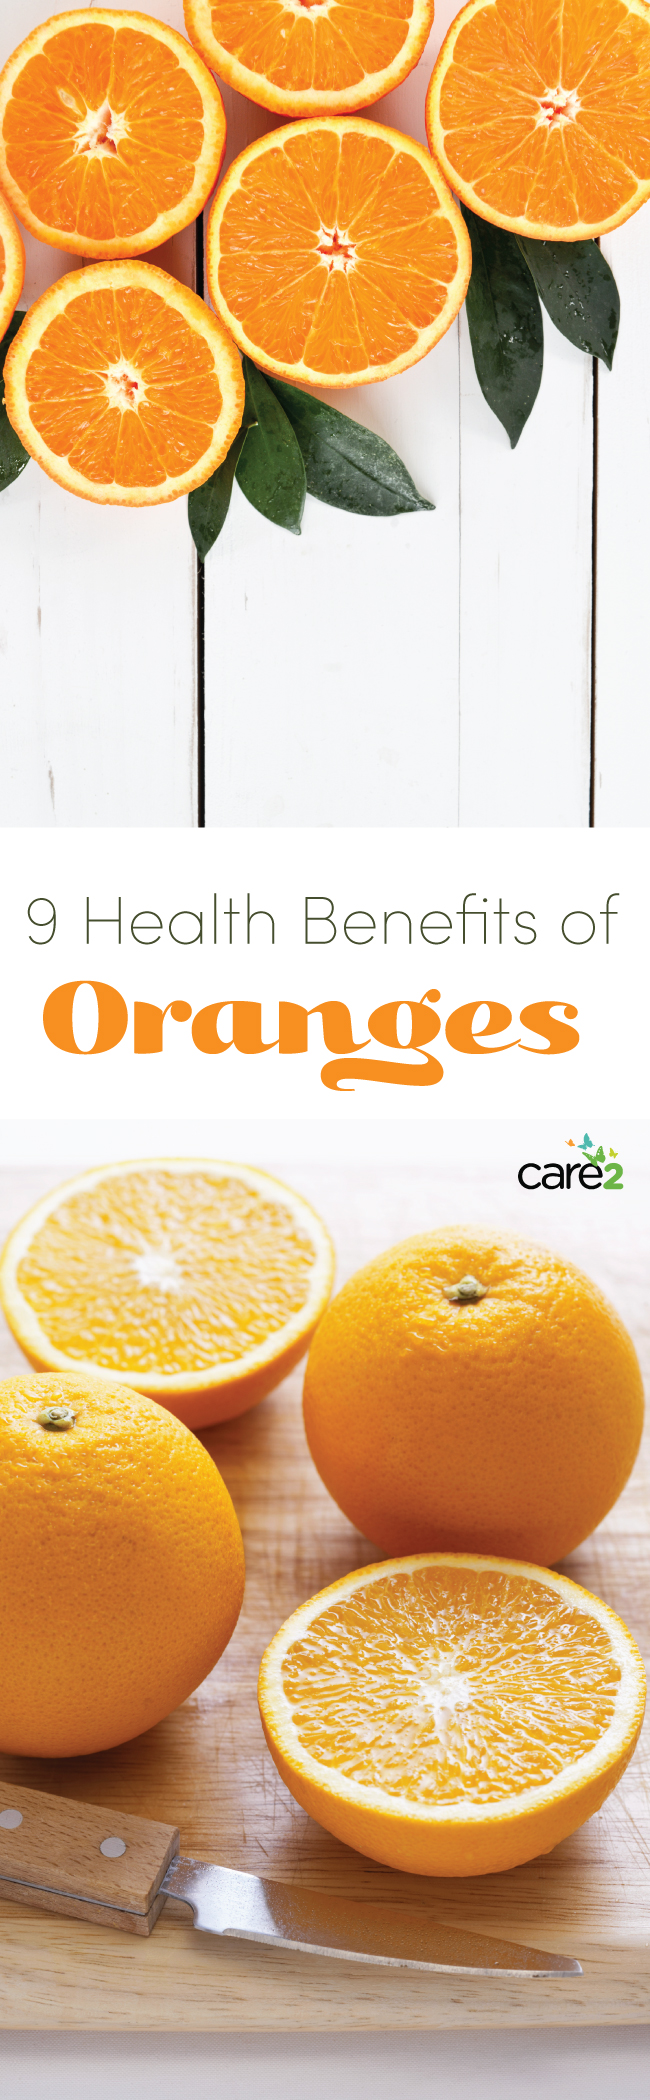 13 Health Benefits Of Oranges | Care2 Healthy Living